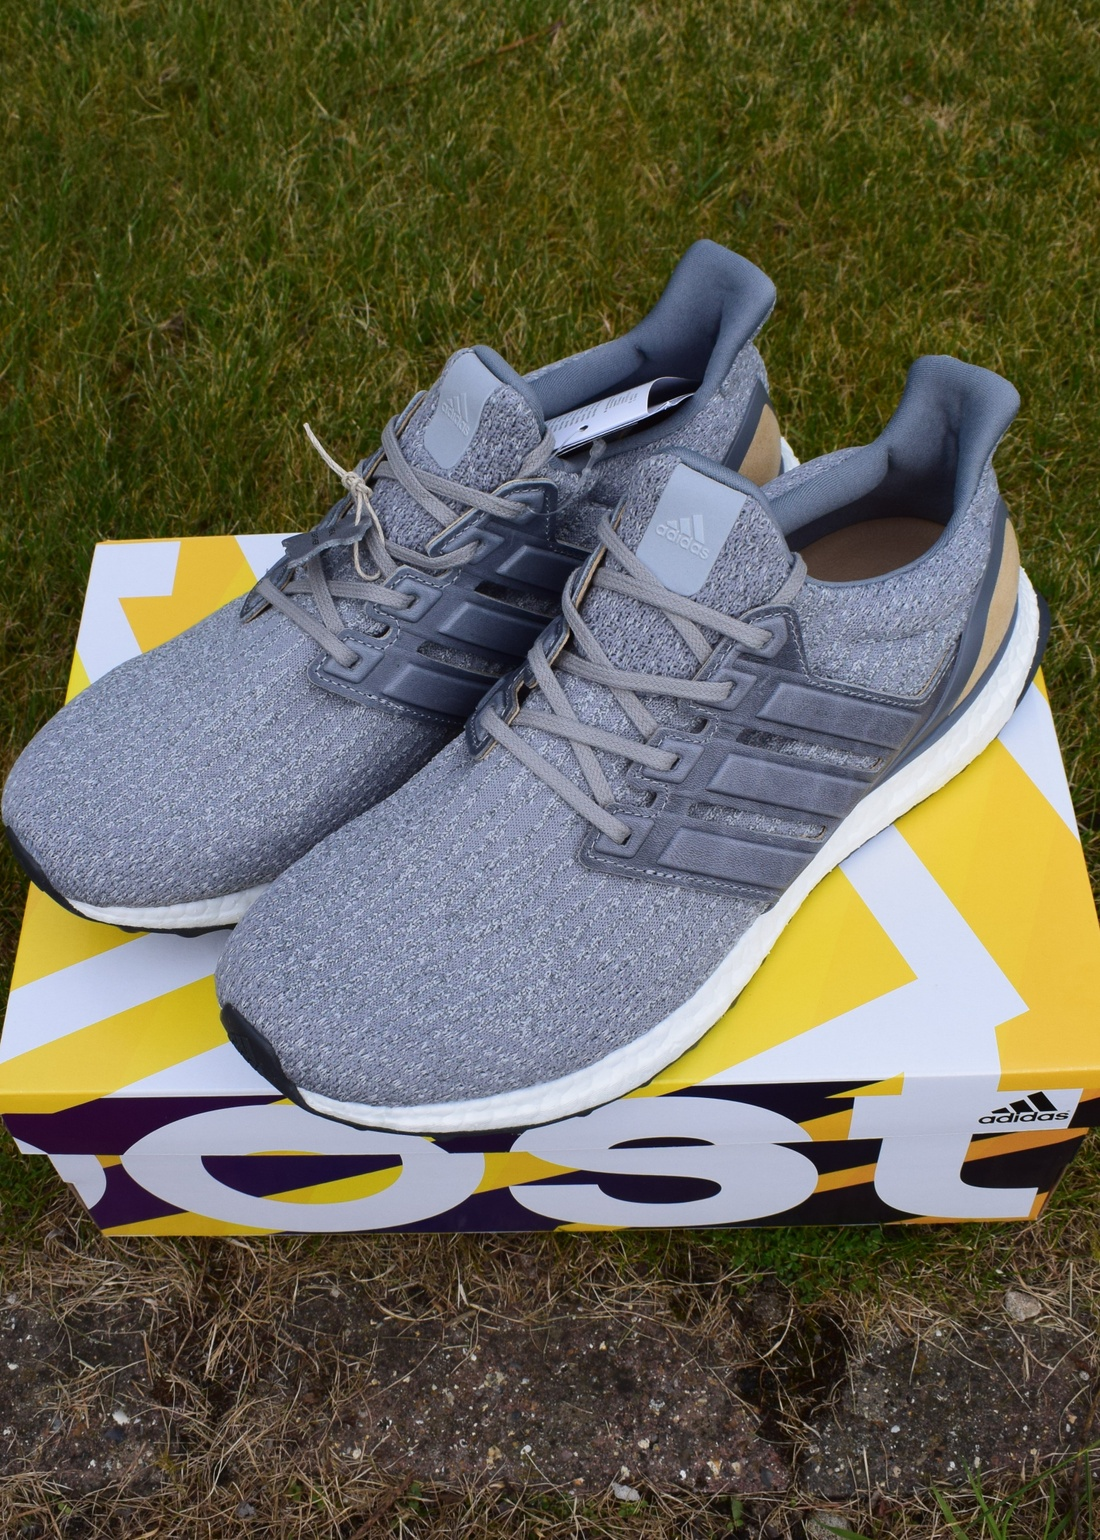 Adidas Ultra Boost M ESM LTD Mystery Gray 3.0 Dark Wolf Black